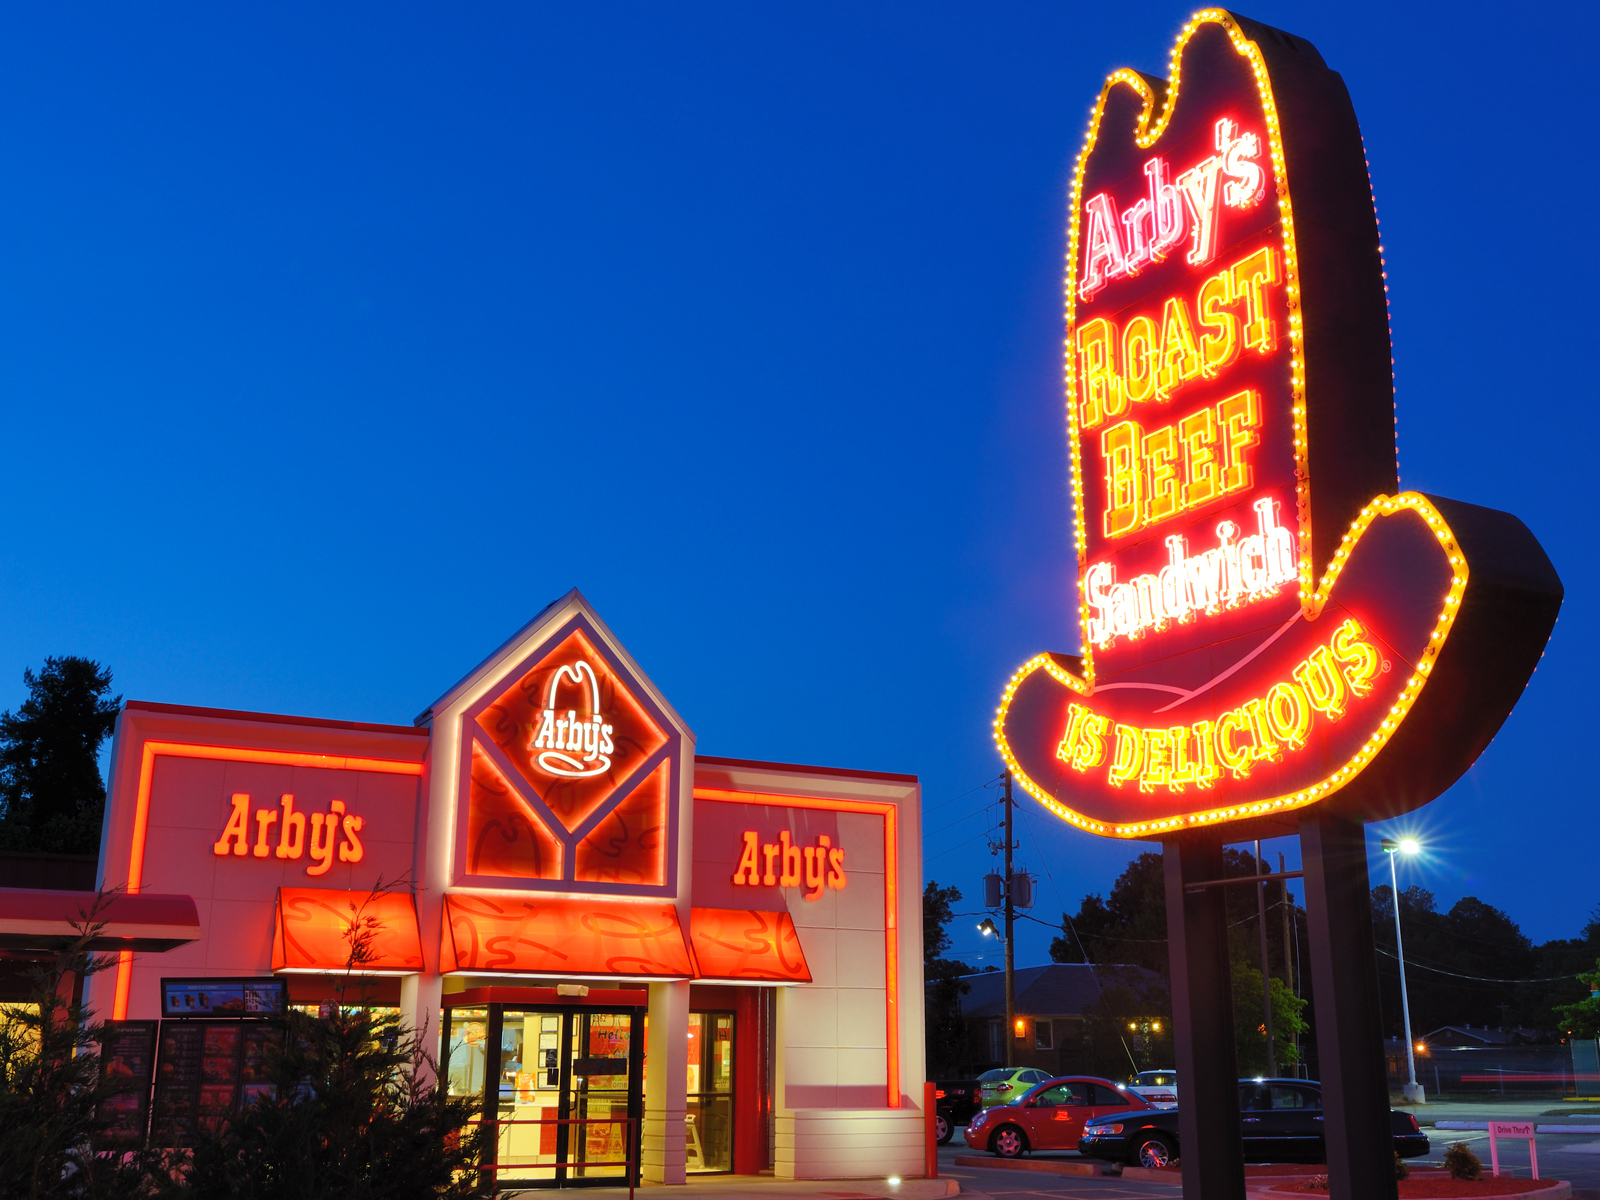 arbys-plant-based-meats-FT-BLOG0519.jpg